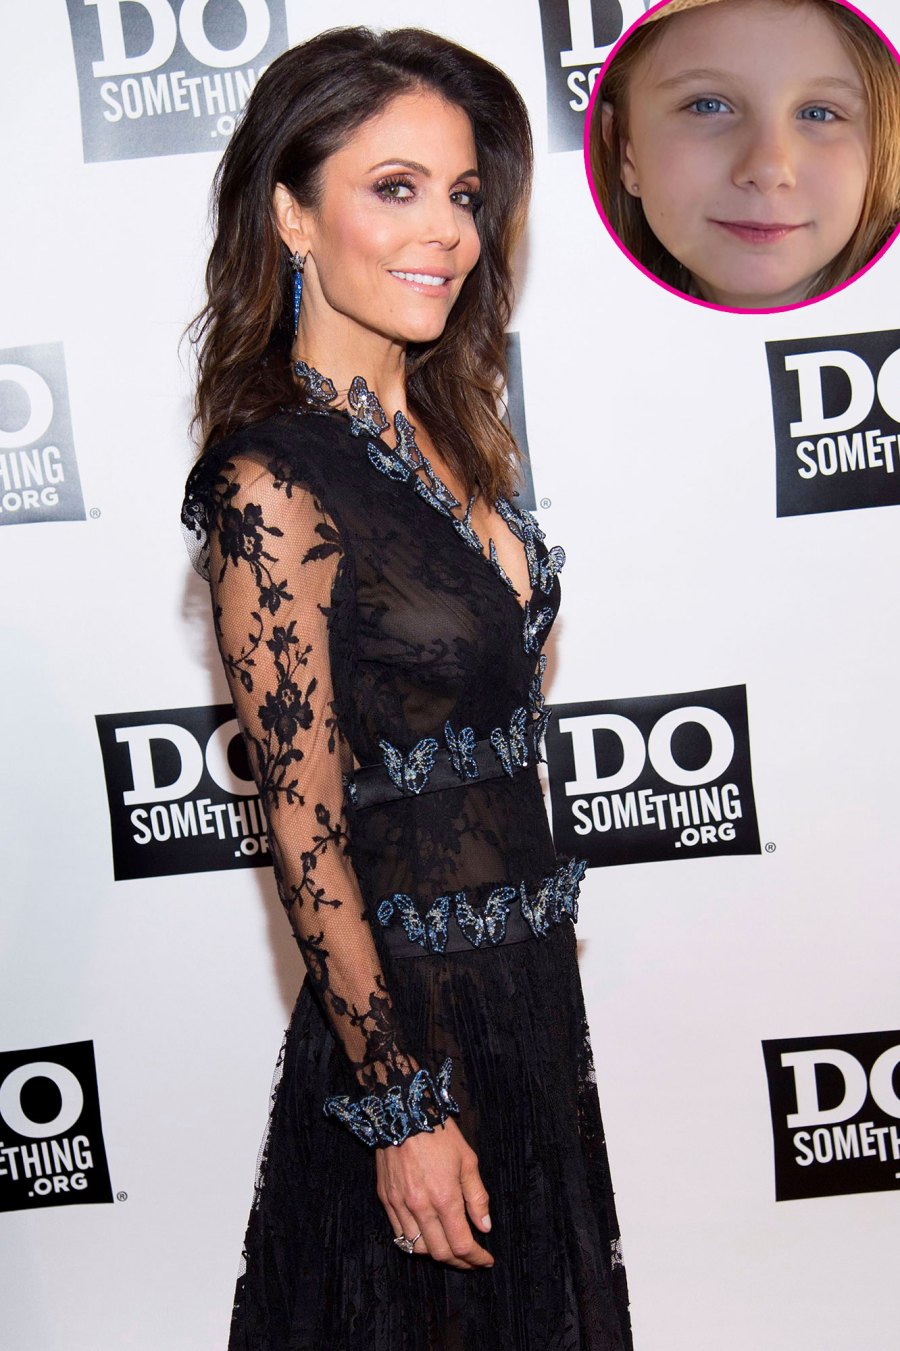 Bethenny Frankel Shares Rare Photo of Daughter Bryn on 10th Birthday